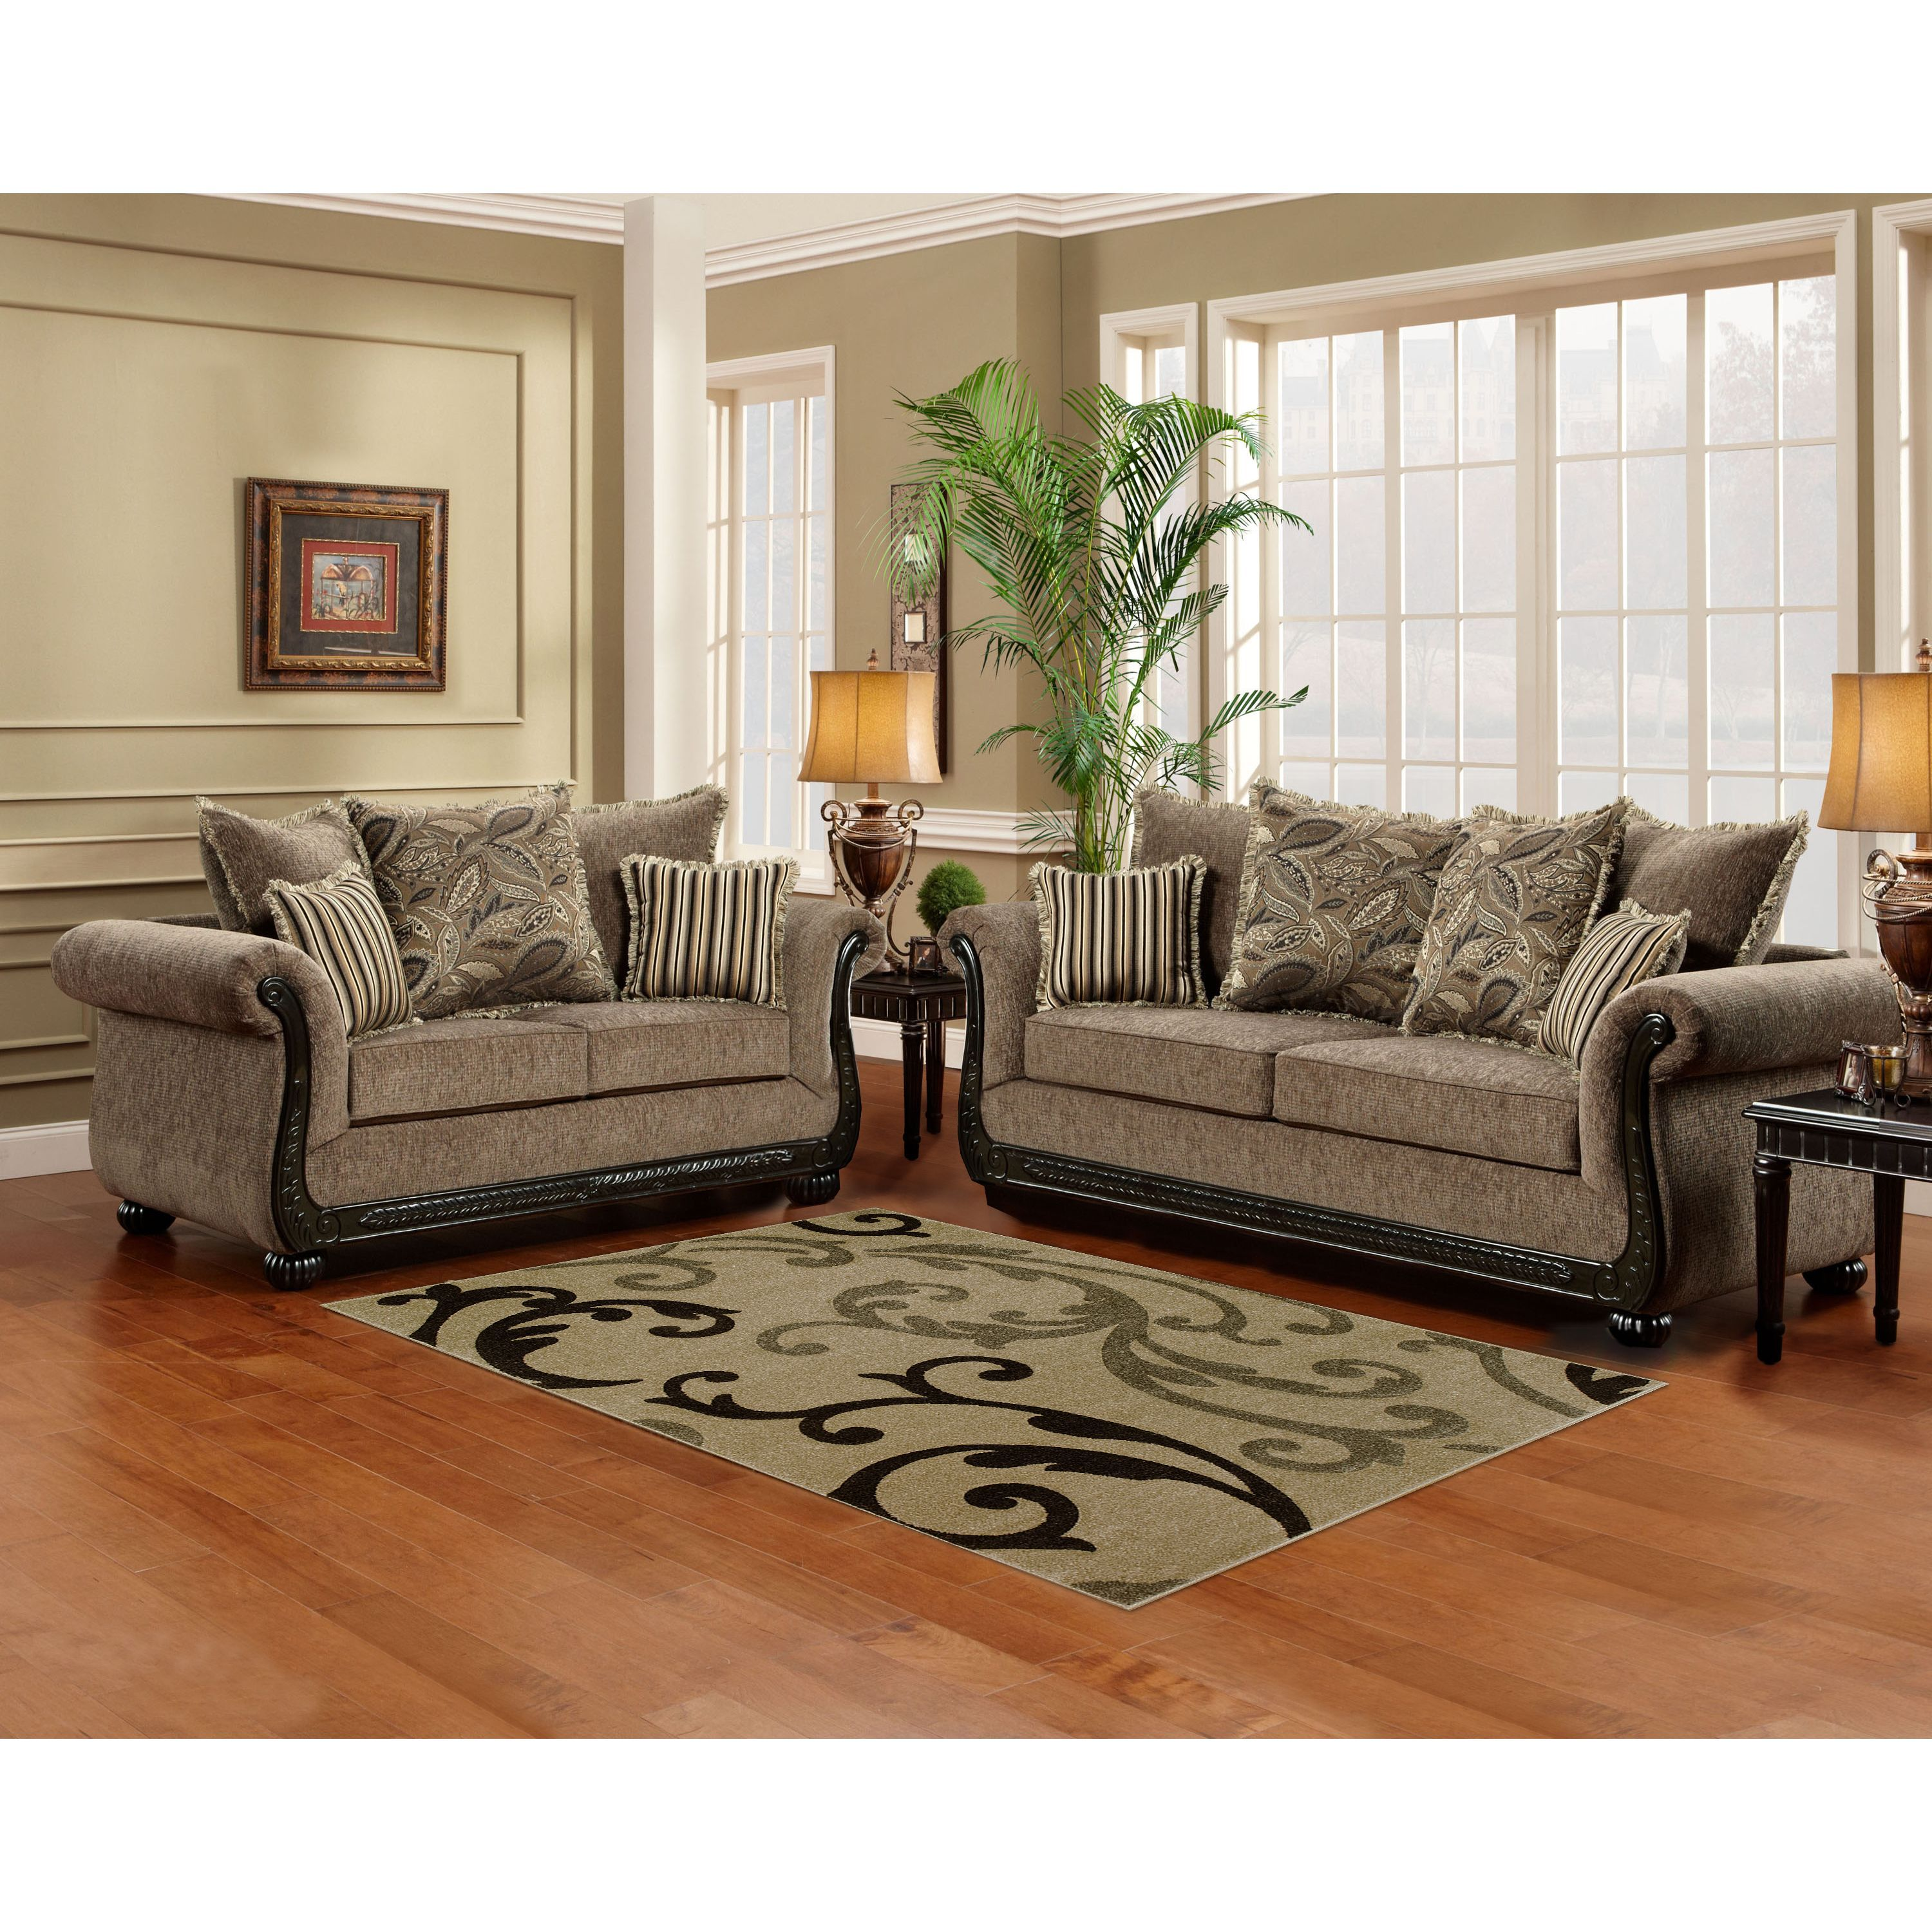 Sofa Trendz Brooke Taupebrown Woodmicrofiber Sofa And Loveseat Fair Wooden Living Room Set Decorating Design